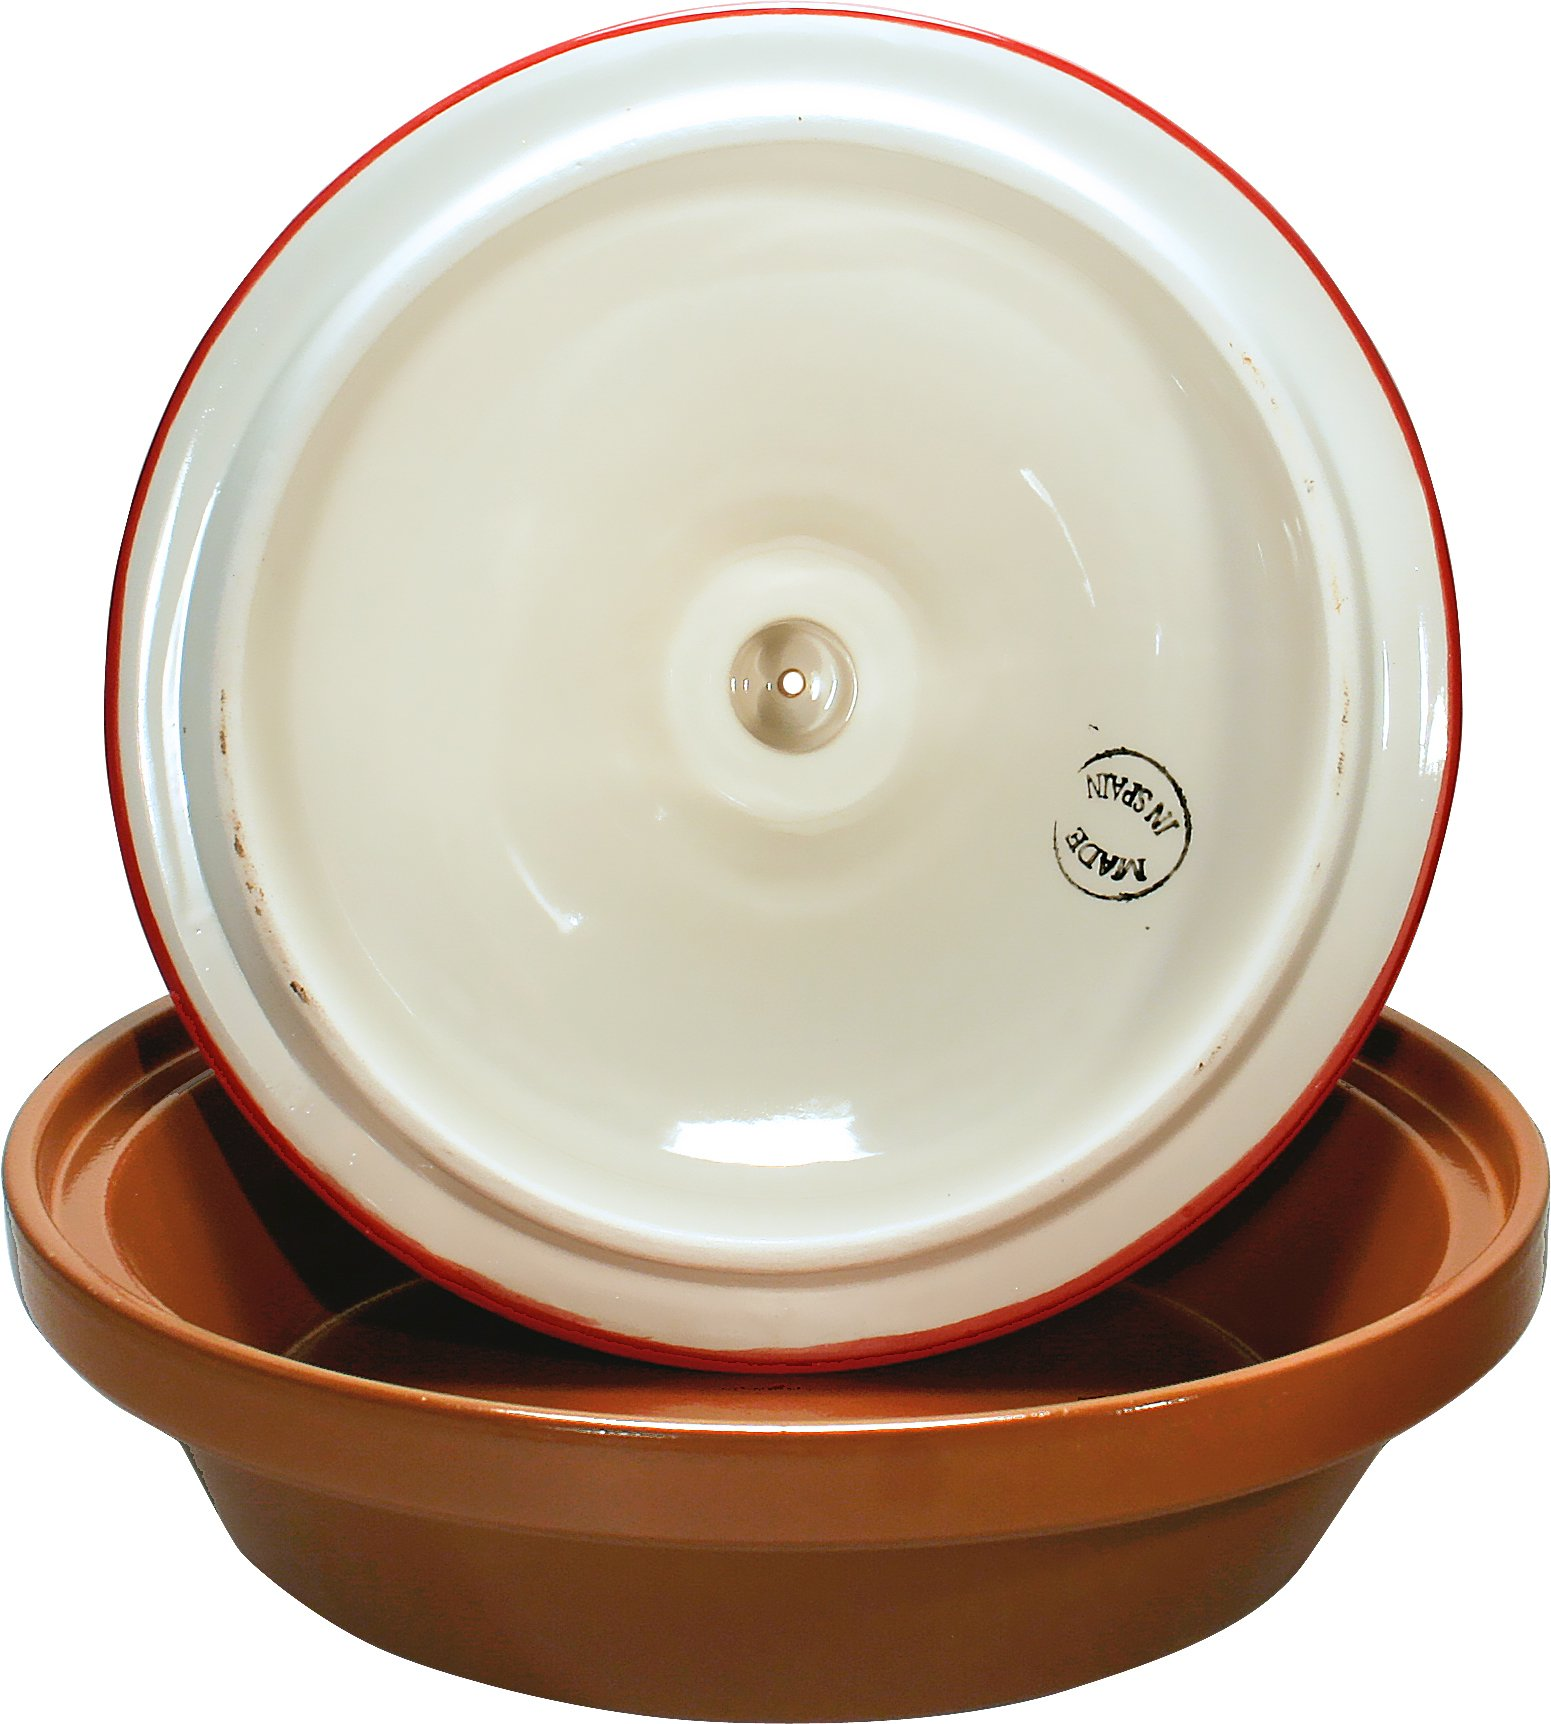 Reston Lloyd Hand Painted Natural Terra Cotta Tagine, 2-Quart, Almeria by Reston Lloyd (Image #3)